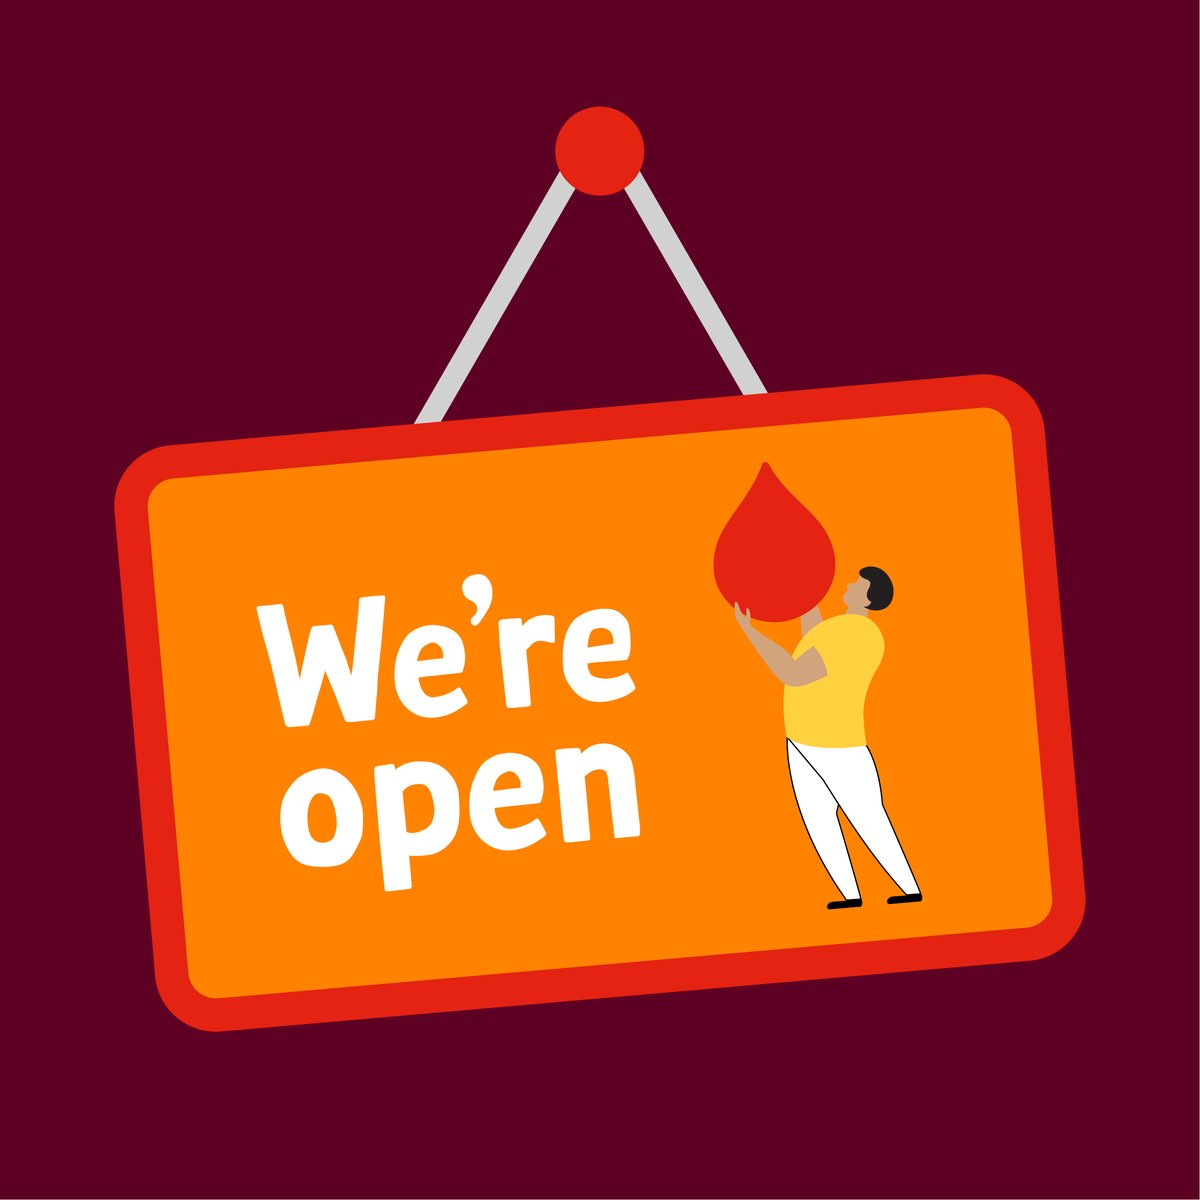 Our Blood Donor Centres remain open, and YOU are essential. We need you to help us meet demand, please make an appointment to donate blood: https://don8blood.com/397Ks4Z